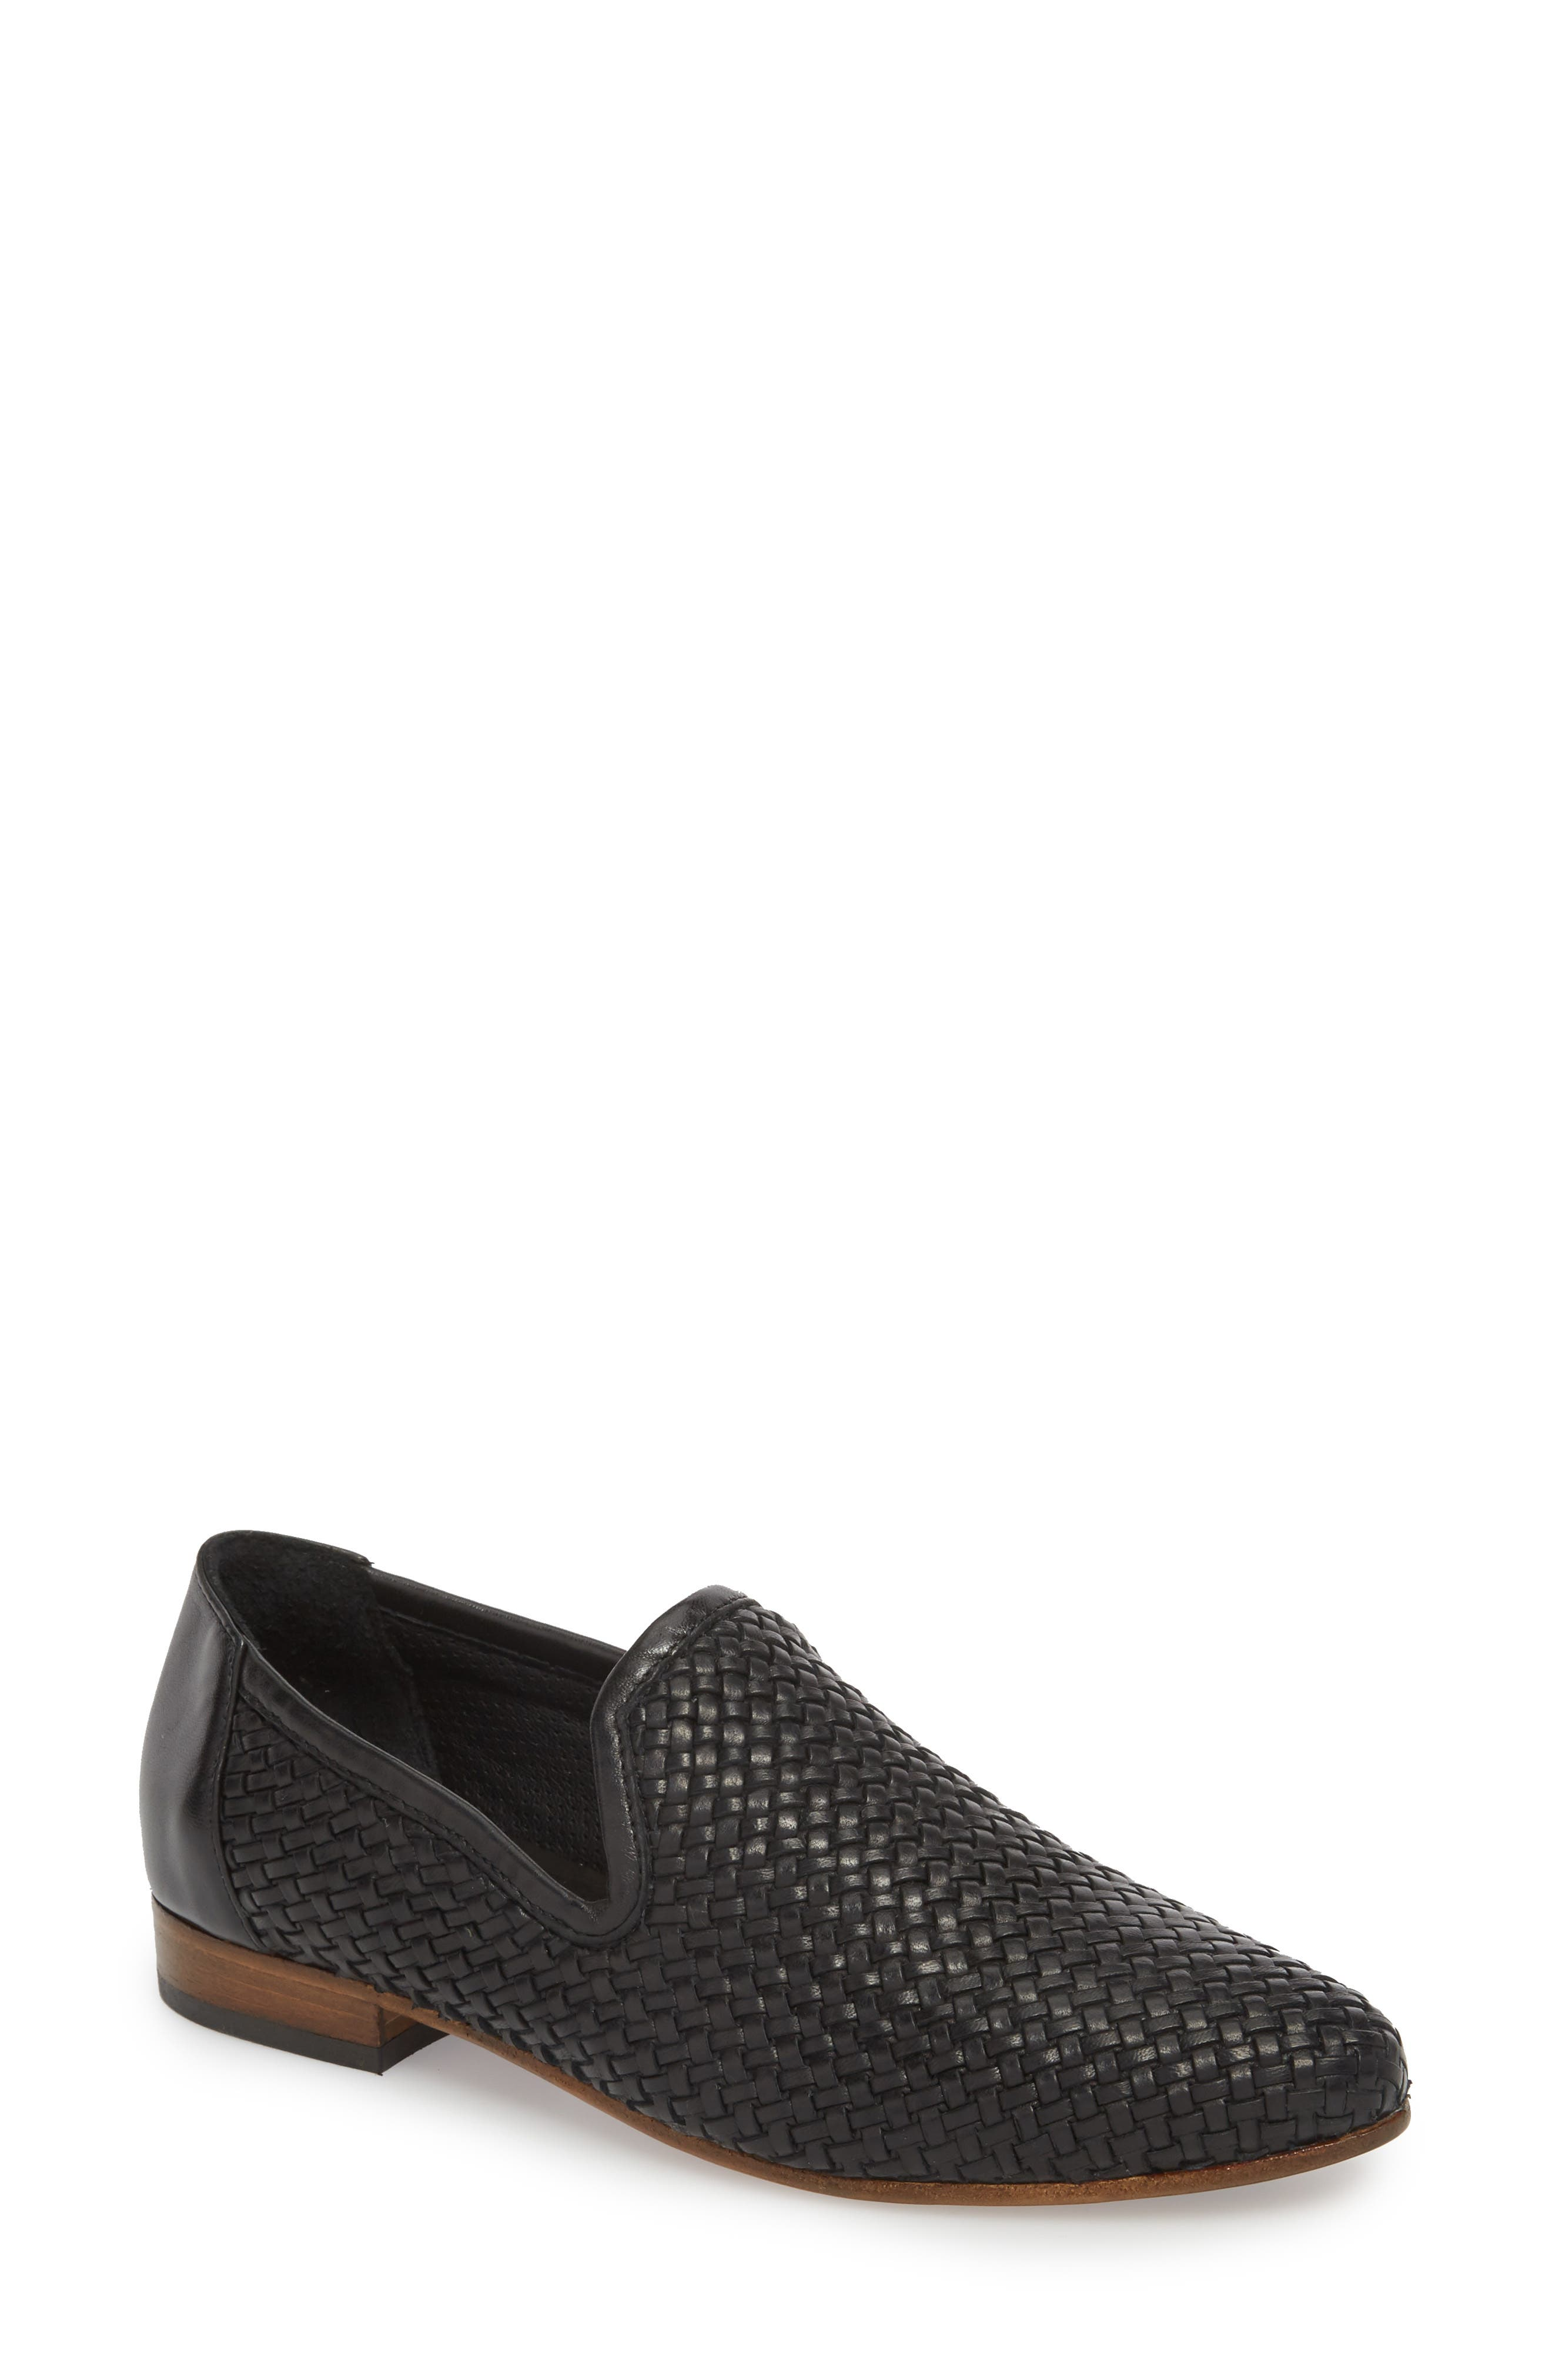 Yara Woven Slip-On Loafer,                             Main thumbnail 1, color,                             Onyx Leather